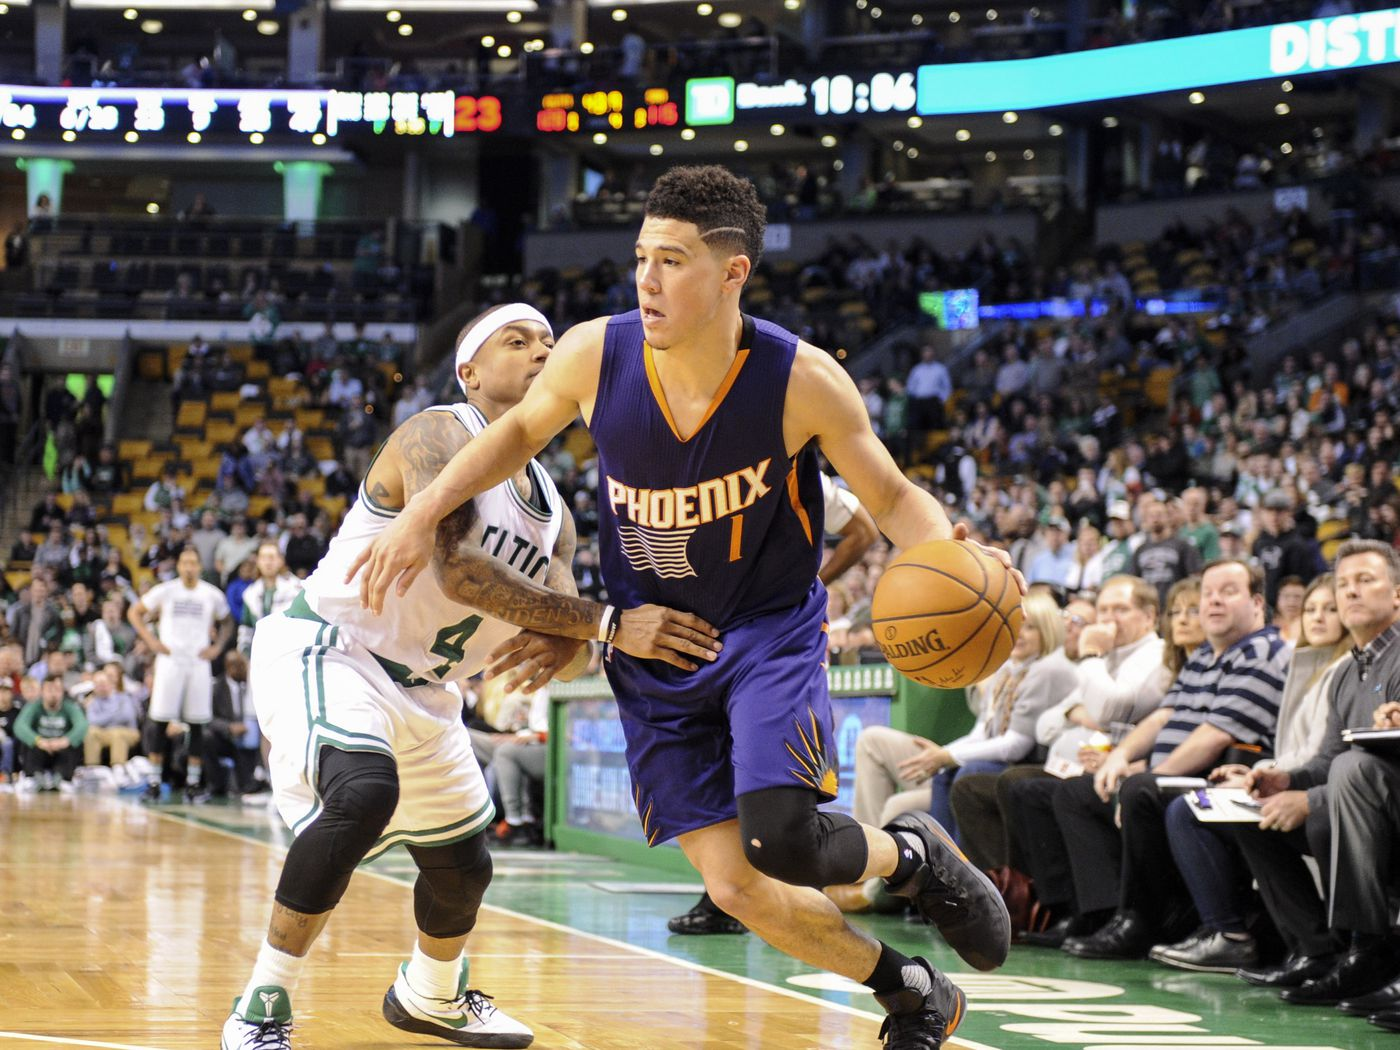 866b03fd8 9 ridiculous stats from Devin Booker s 70-point game - SBNation.com